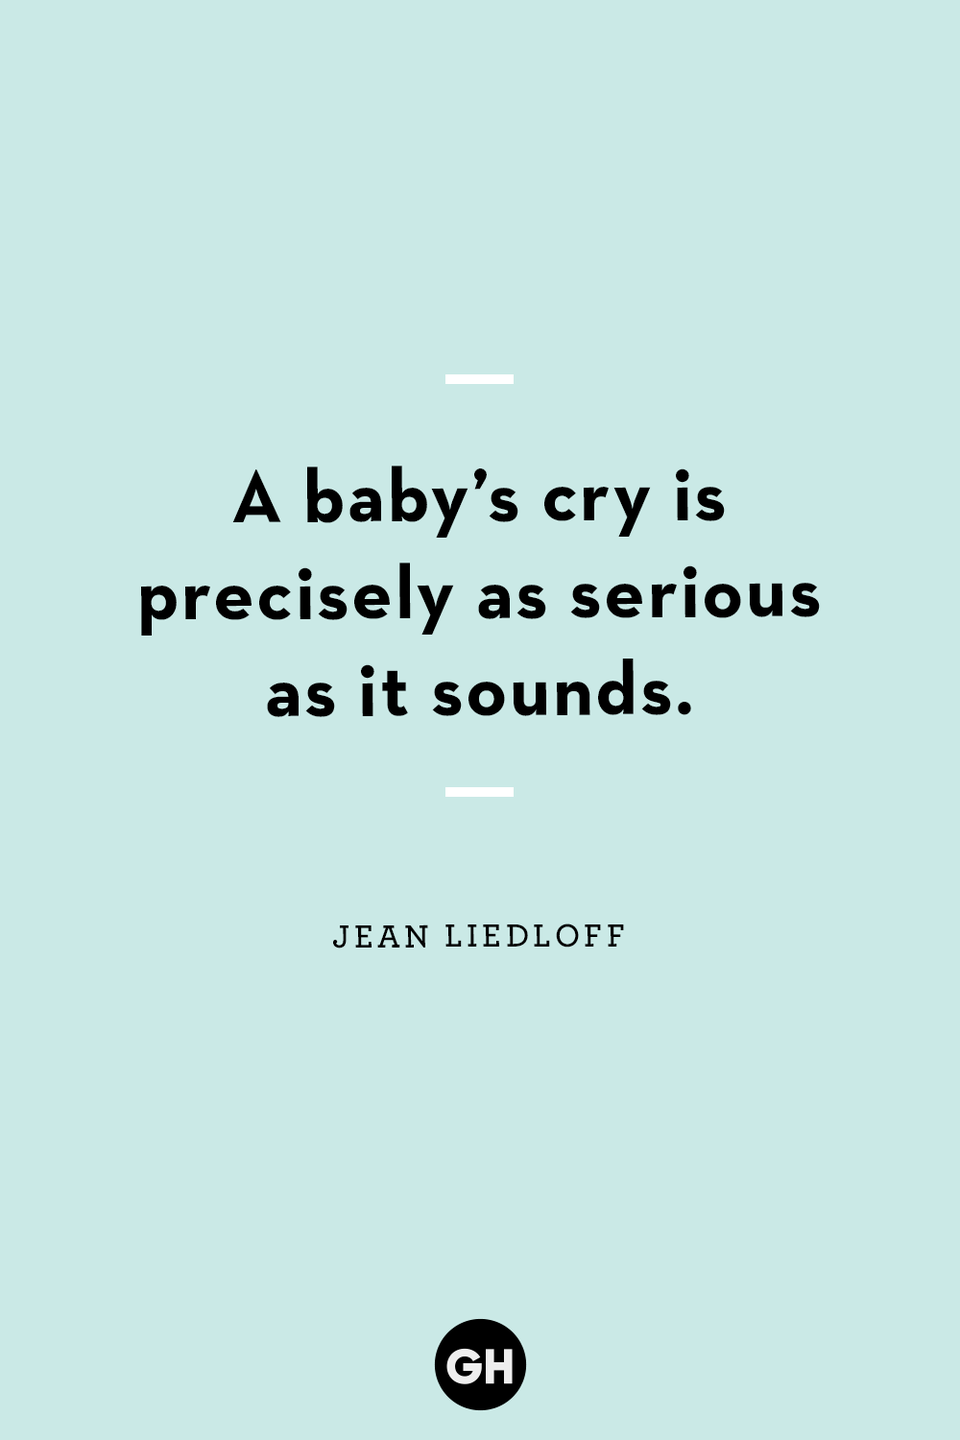 """<p>A baby's cry is precisely as serious as it sounds.</p><p><strong>RELATED:</strong> <a href=""""https://www.goodhousekeeping.com/holidays/mothers-day/g4244/mothers-day-quotes/"""" rel=""""nofollow noopener"""" target=""""_blank"""" data-ylk=""""slk:Mother's Day Quotes That Help Express How Important She Is"""" class=""""link rapid-noclick-resp"""">Mother's Day Quotes That Help Express How Important She Is</a></p>"""